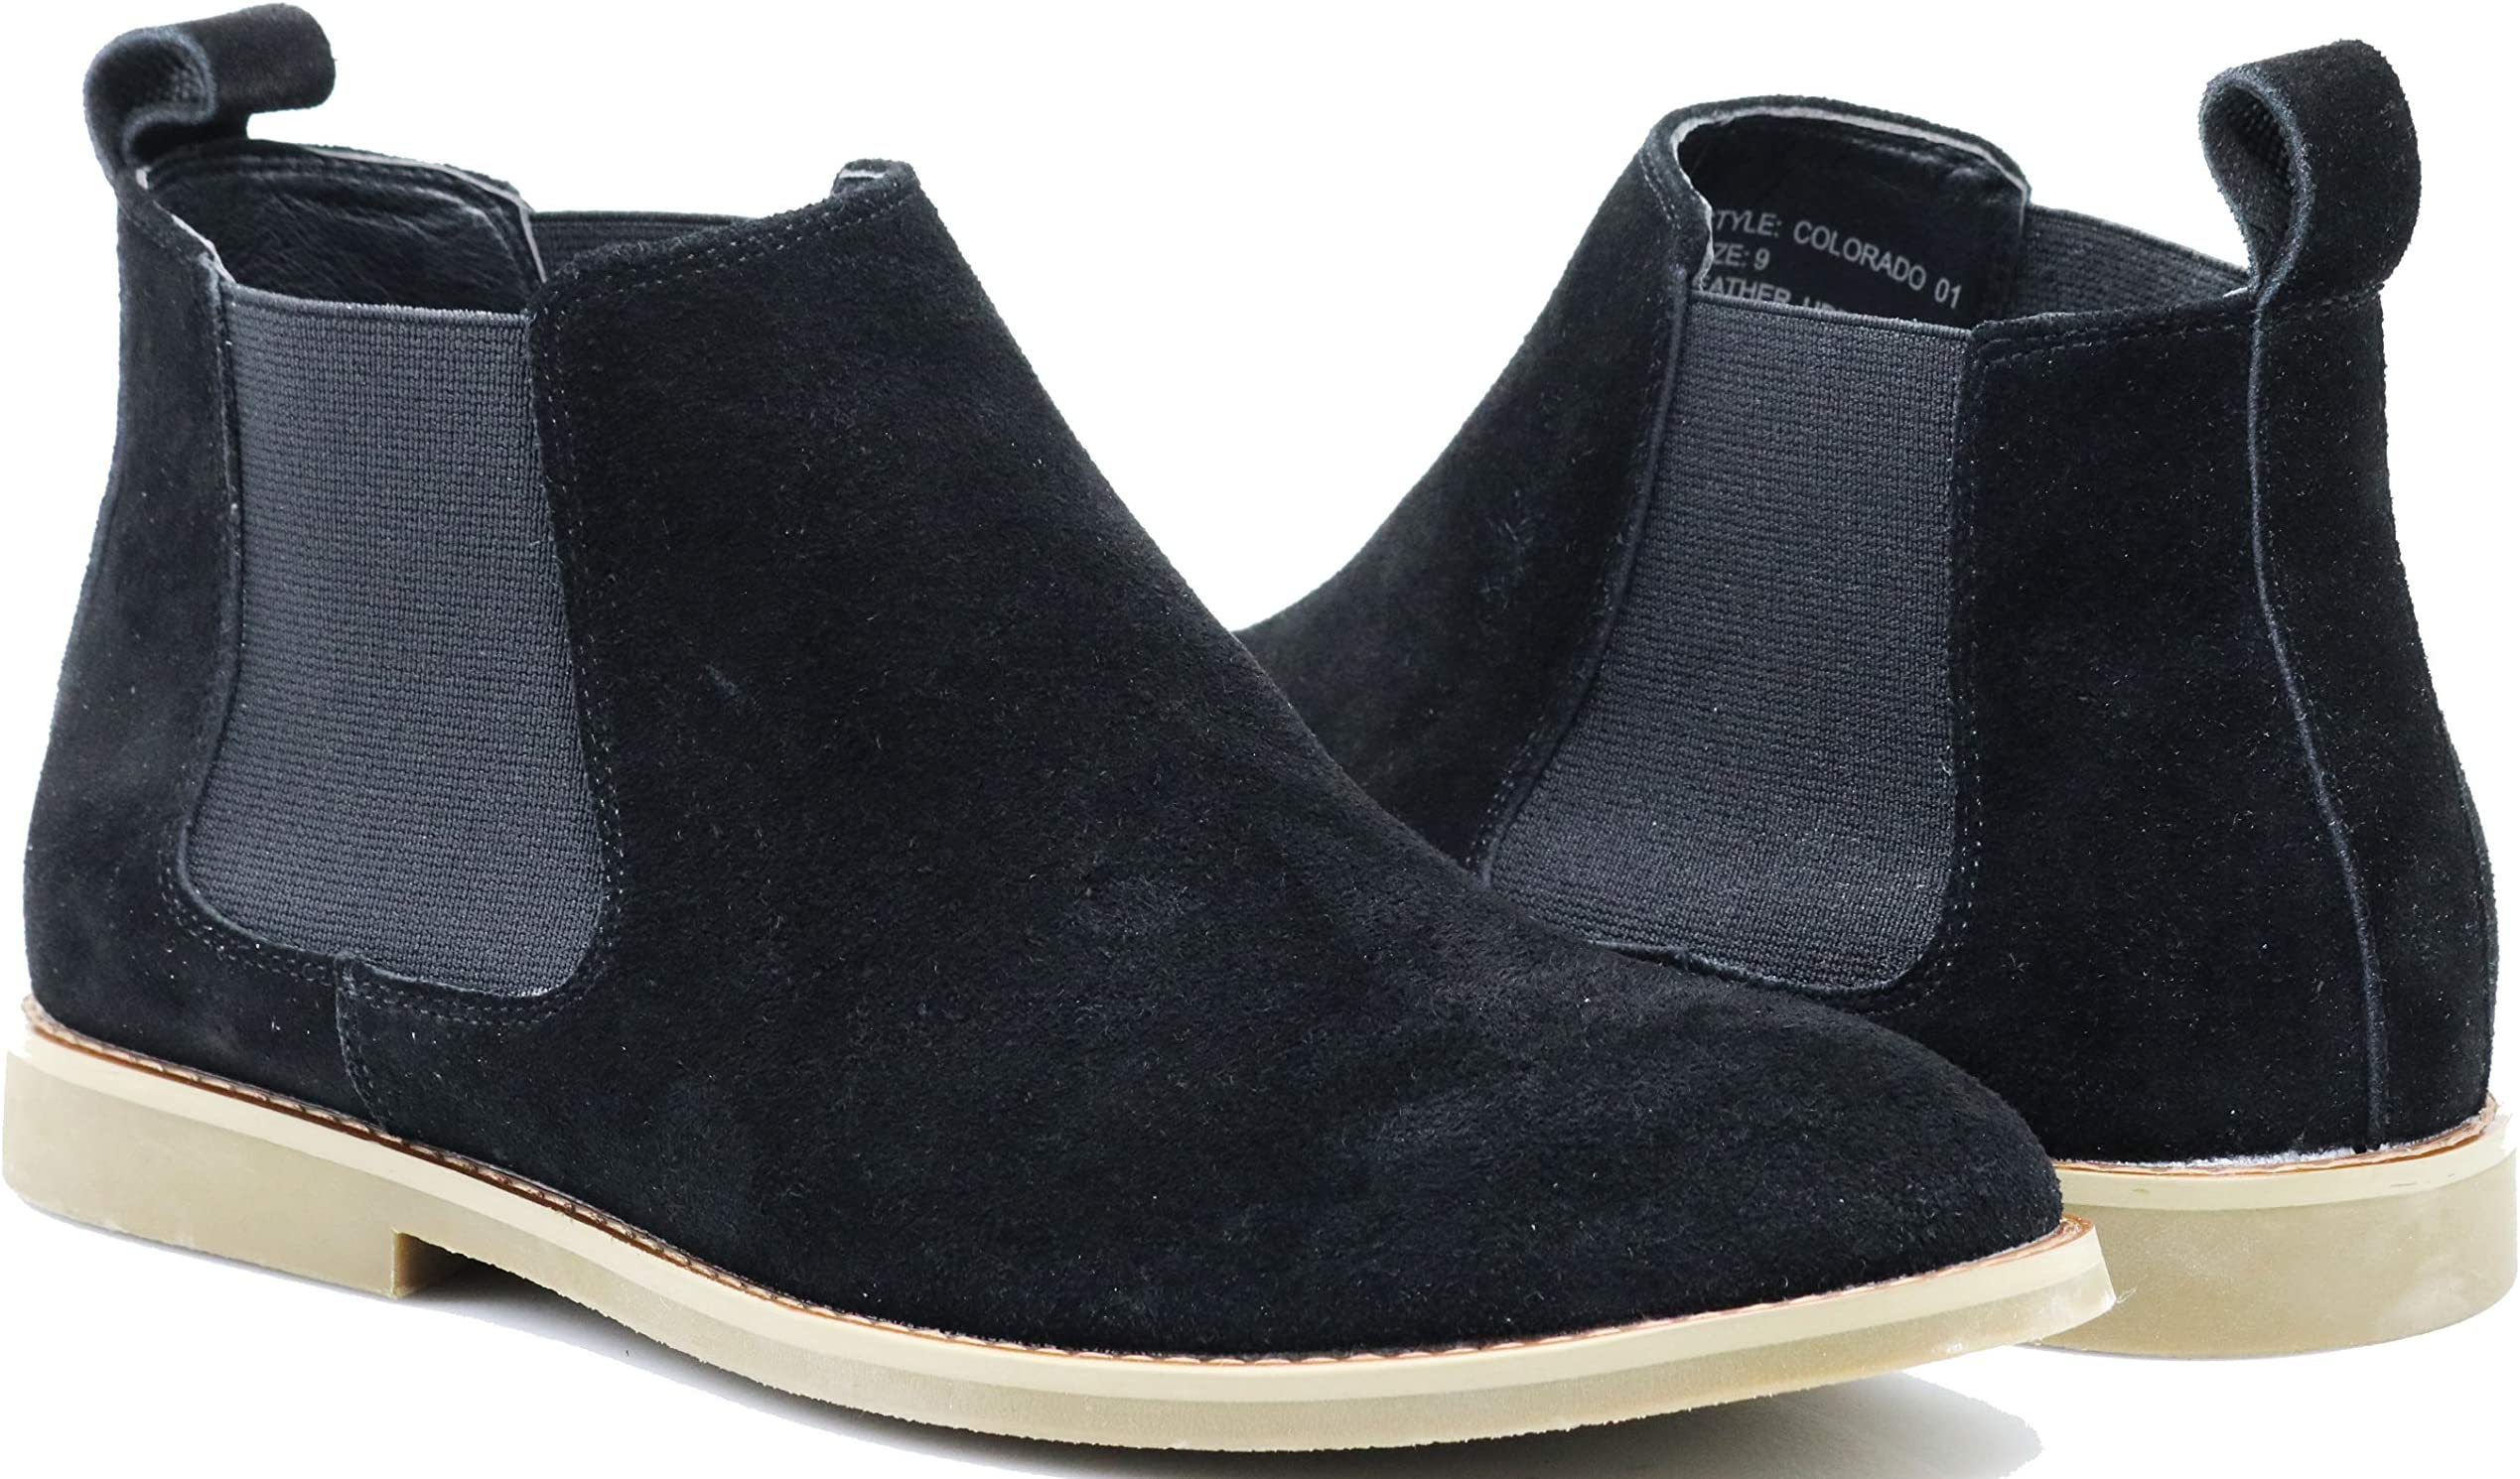 Suede Leather Ankle Boots price in UAE